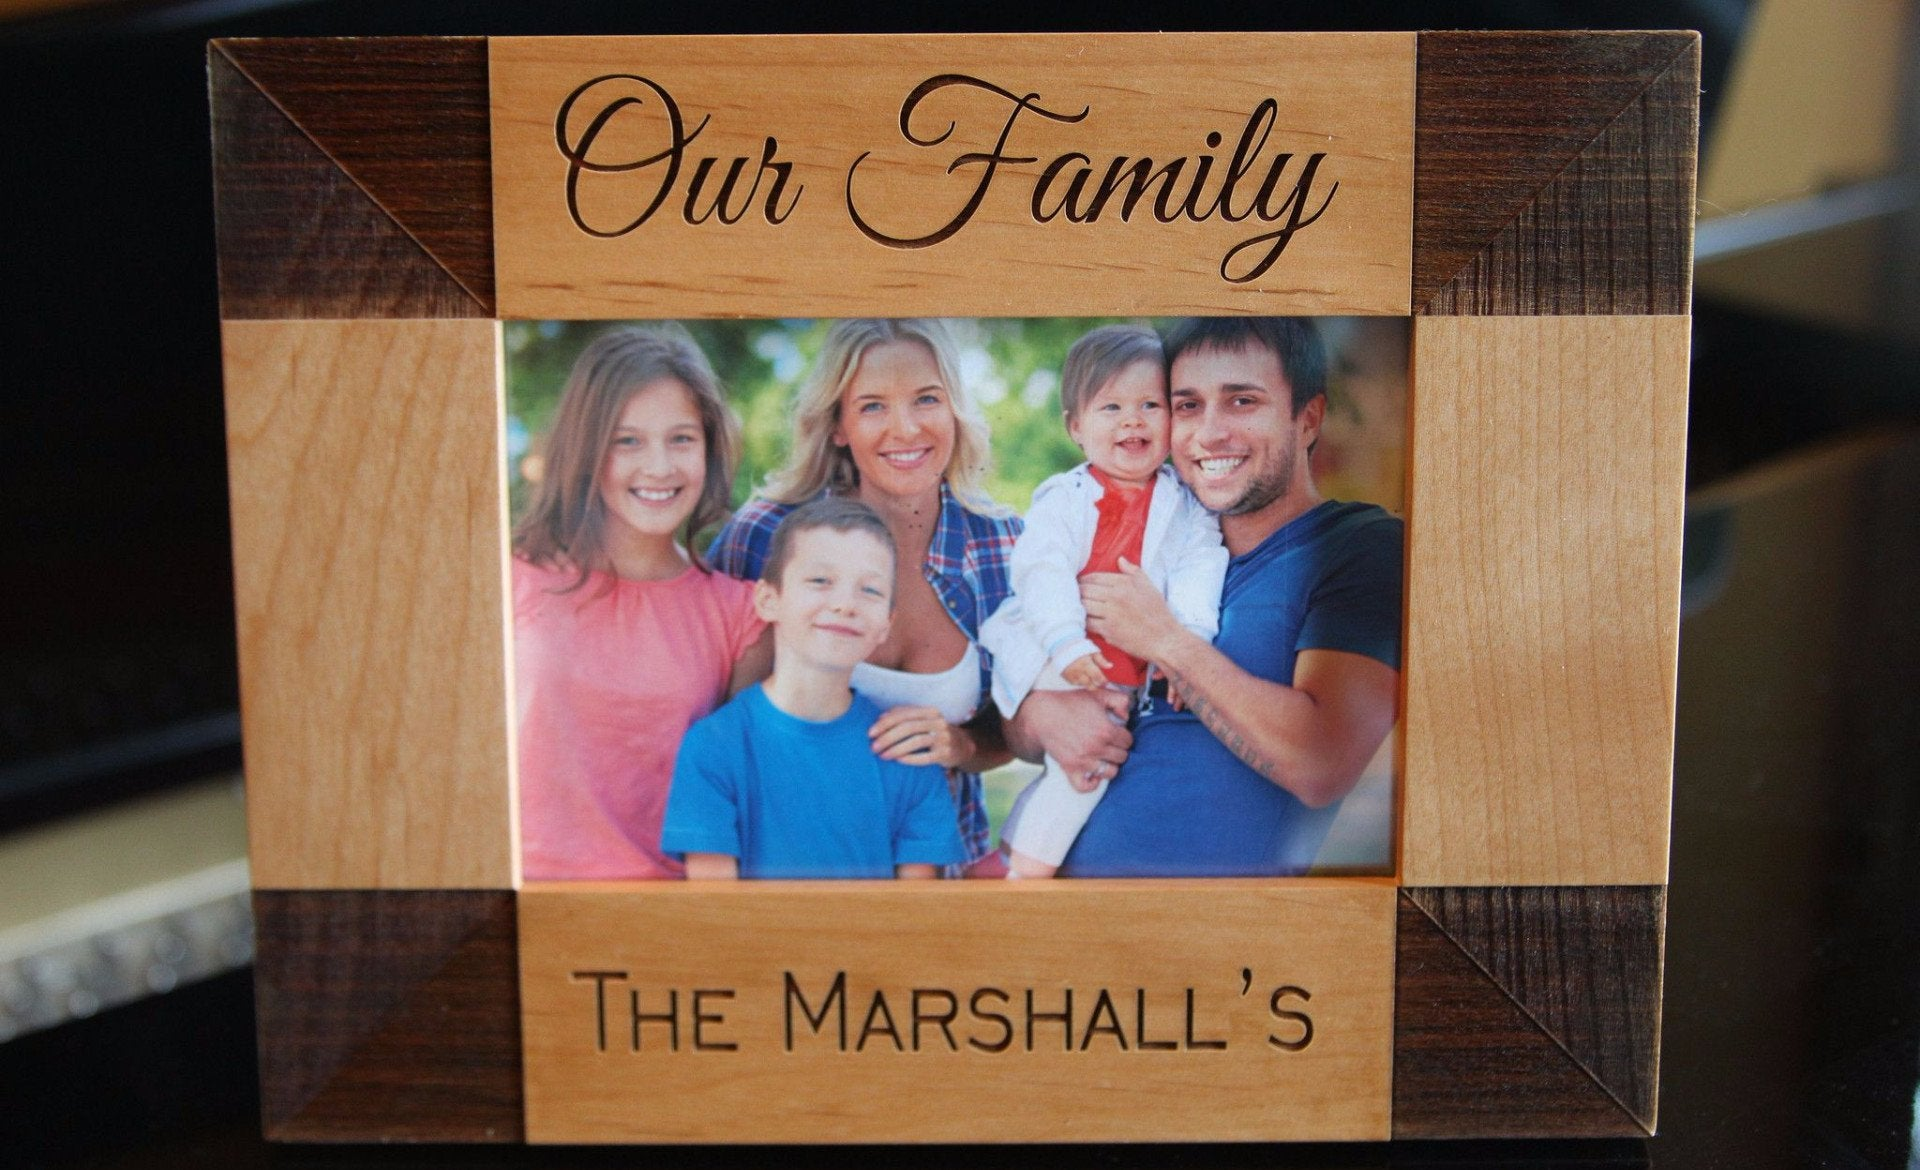 Personalized Family Photo Frames - Qualtry